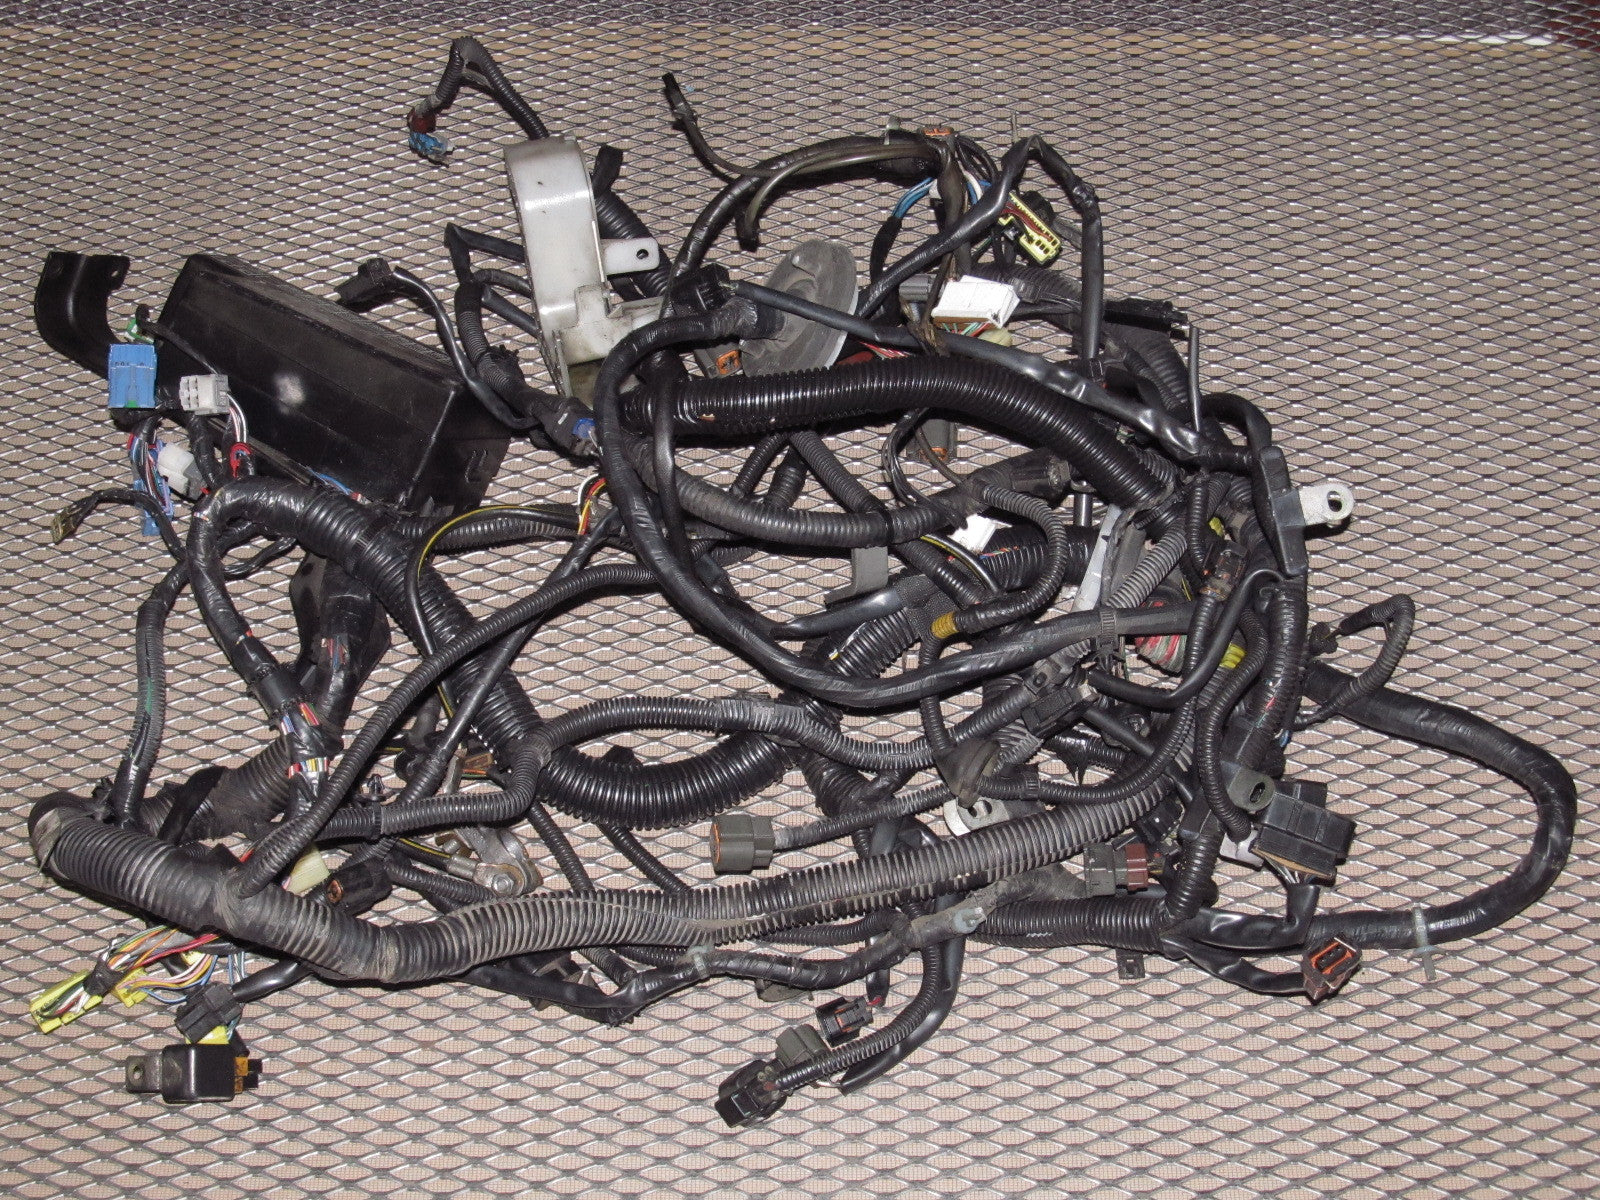 IMG_7963_f3666cfb 74d4 4de8 8f9f c58b26995fb0?v=1468950122 eclipse 95 99 page 6 autopartone com 1995 mitsubishi eclipse engine wiring harness at readyjetset.co